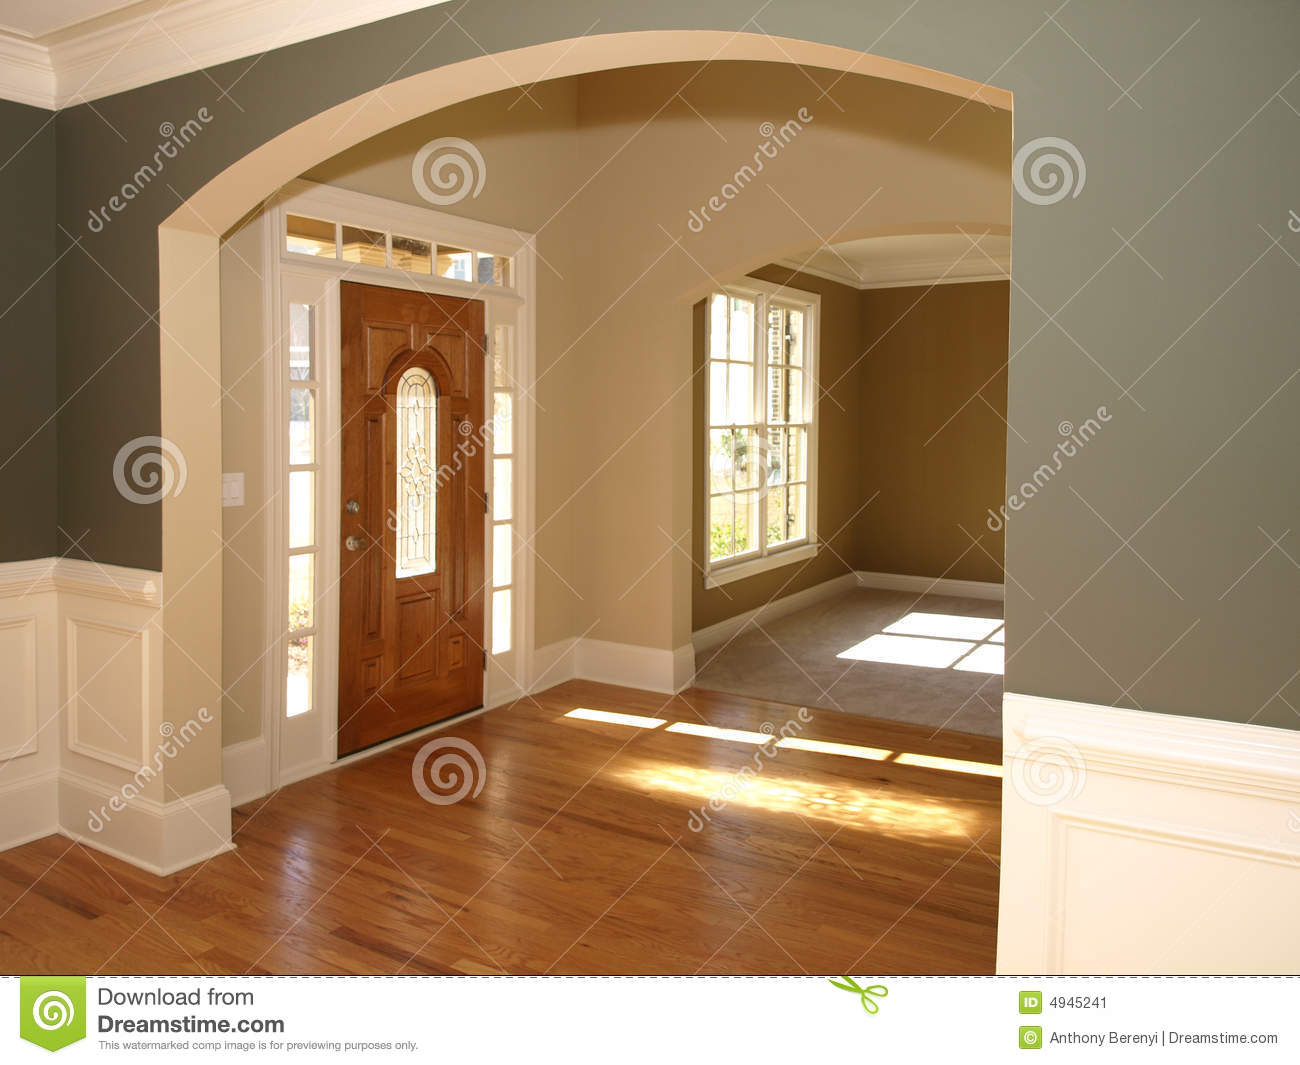 Luxury stained glass door with arch entrance stock image for Arch door design